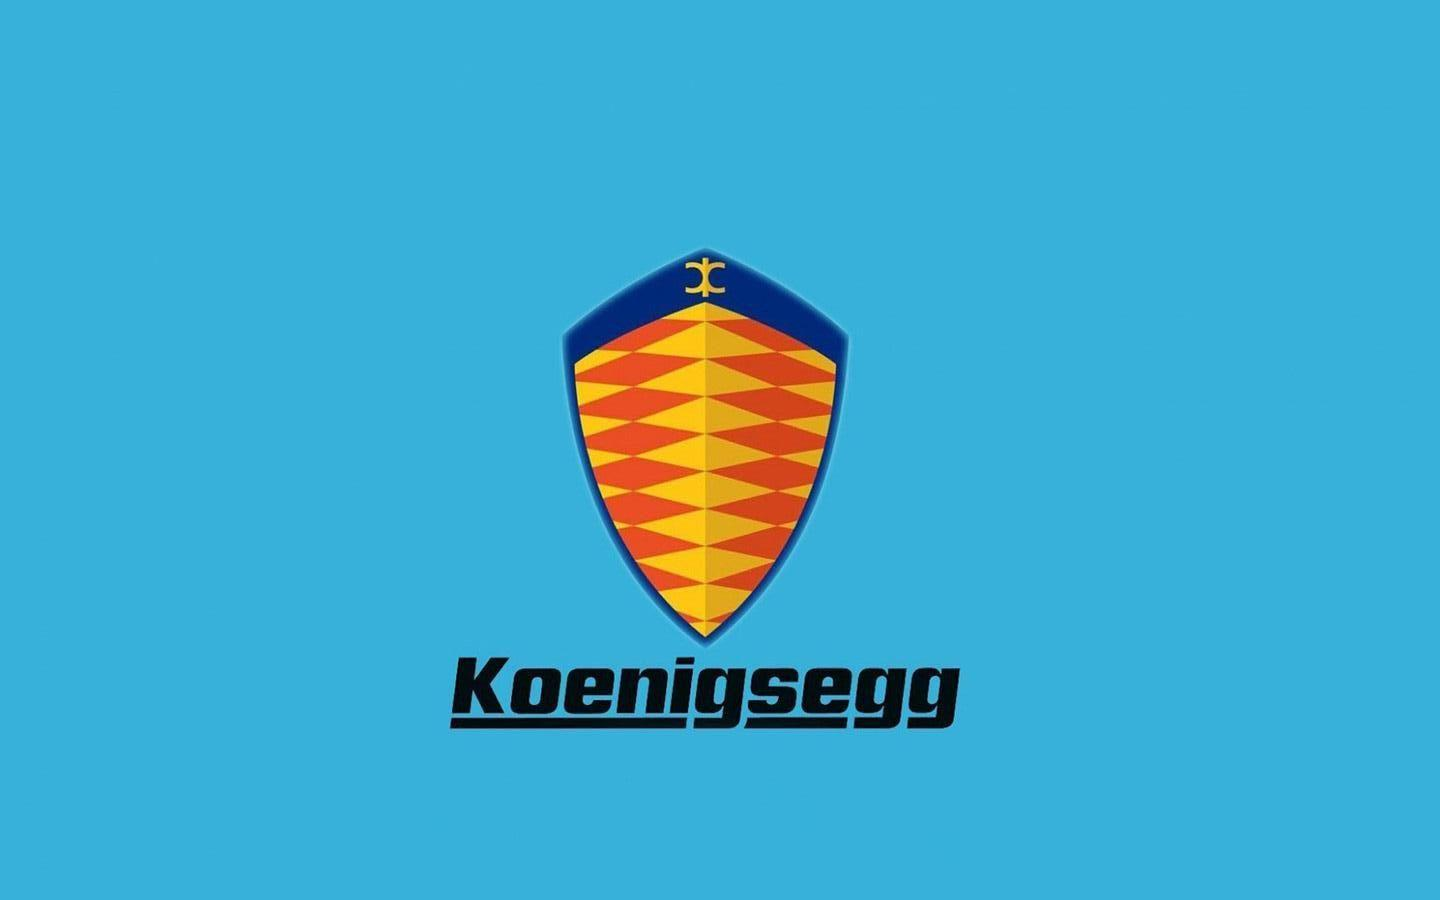 KOENIGSEGG LOGO DESKTOP BACKGROUND